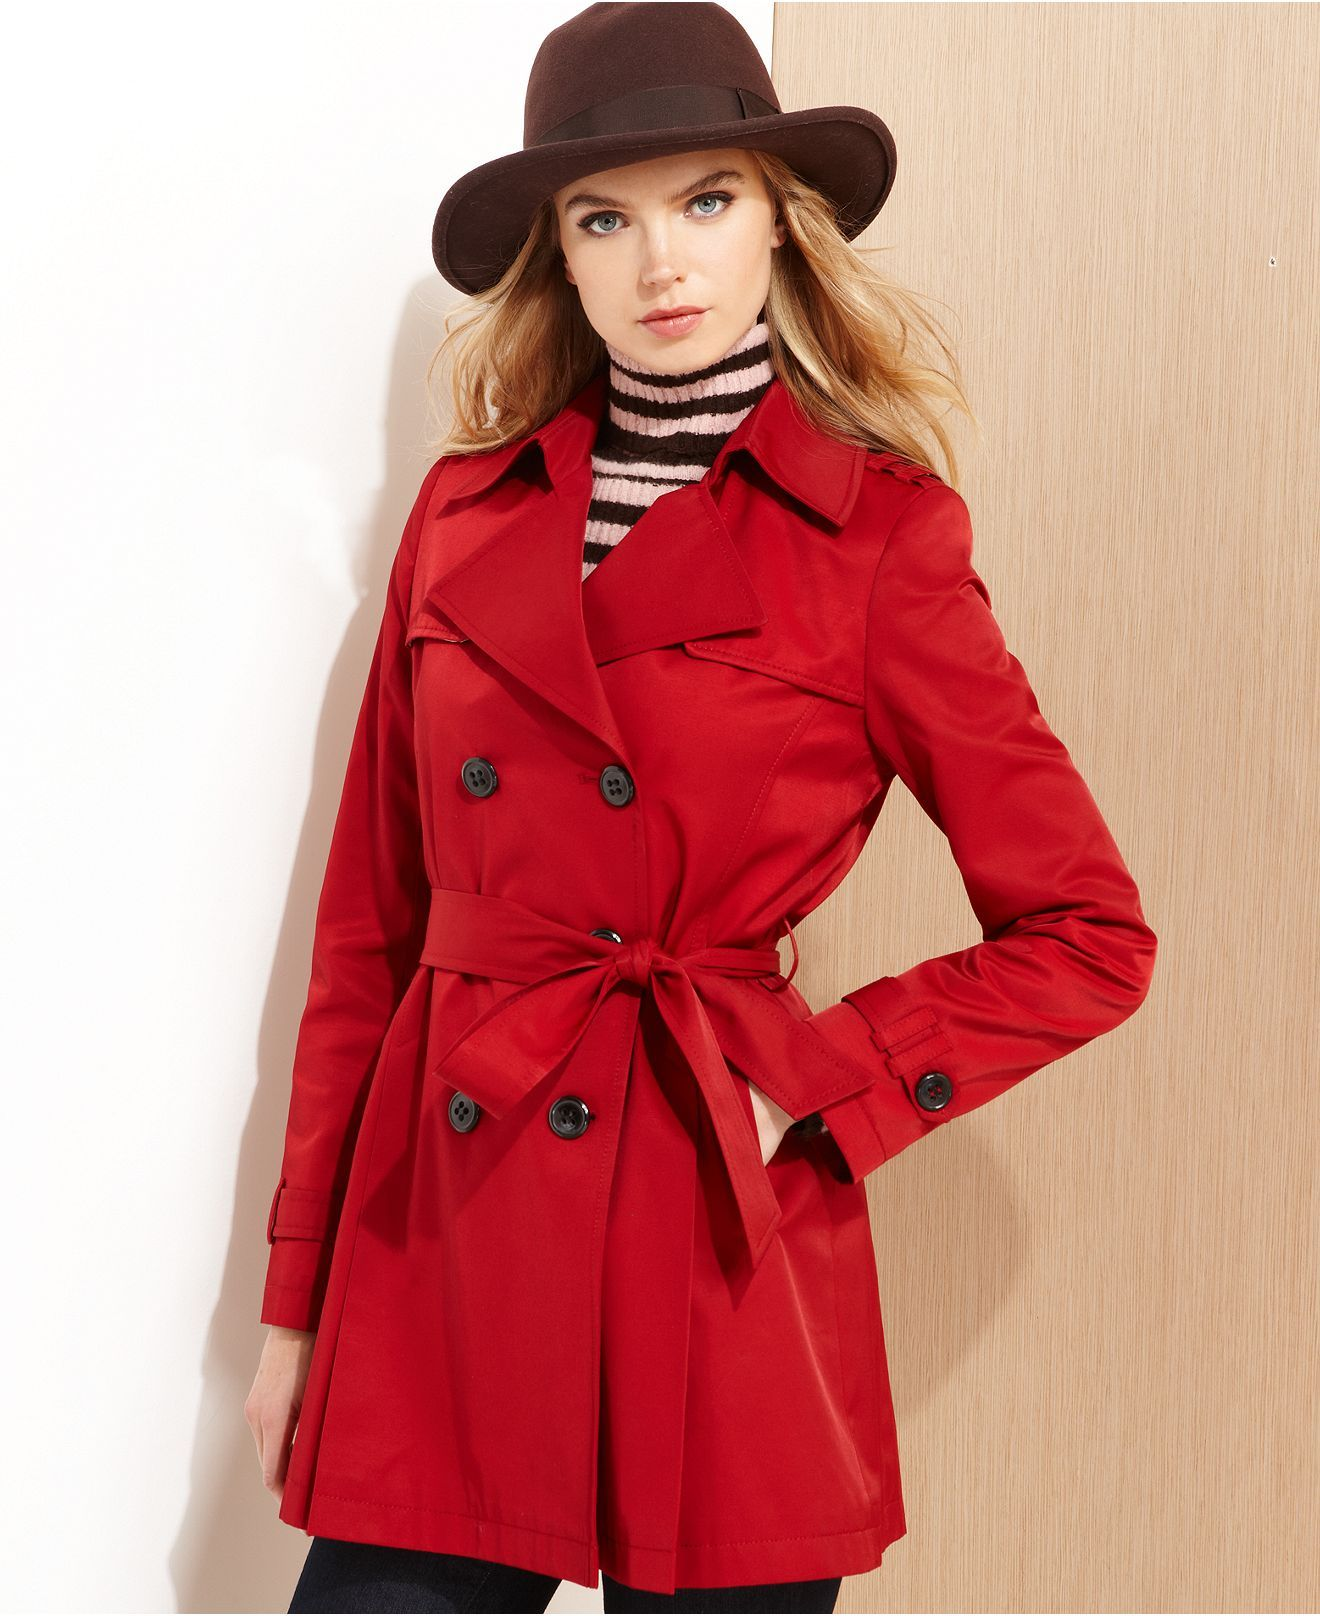 DKNY Raincoat, Cropped Trench Coat - Womens Coats - Macy's. Want this in  Navy - DKNY Raincoat, Cropped Trench Coat - Womens Coats - Macy's. Want